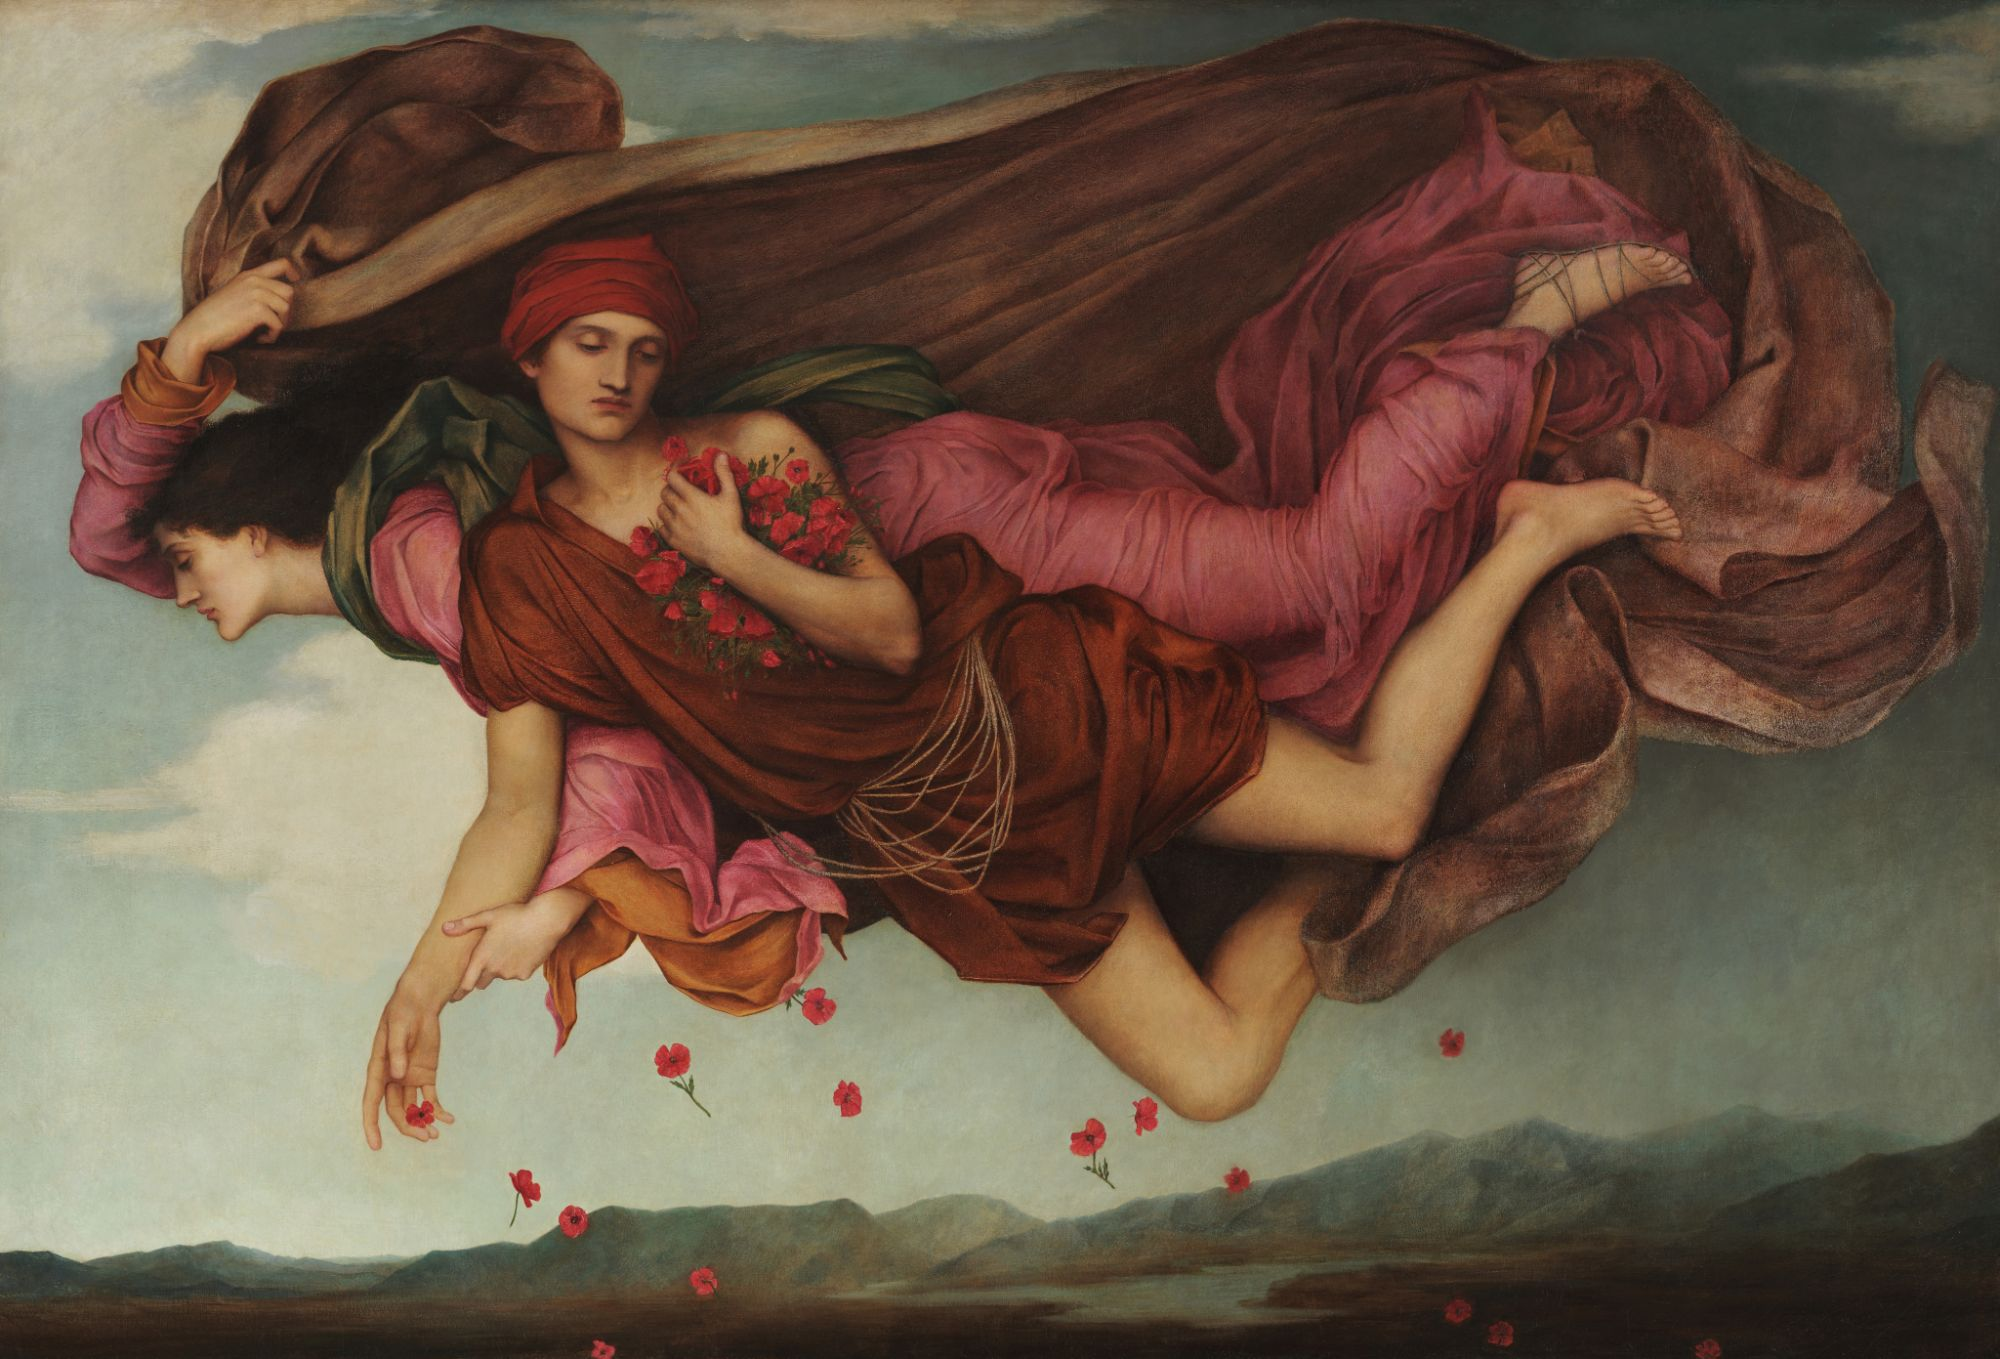 """Night floats through the evening sky, his red robes reminiscent of the sunset, and his billowing cloak darkening the sky behind him. He floats arm in arm with Sleep, who gently scatters poppies onto the earth beneath, from the armful of flowers that he has taken from his girdle. (The Victorians used laudanum as a sleeping draught, which was made from tincture of the opium poppy.) Both figures appear relaxed, with closed eyes, as if already half-asleep. The composition for the painting was inspired by Botticelli's Birth of Venus where Zephyr and Chloris fly with limbs entwined as a twofold entity: the ruddy Zephyr (Greek for """"the west wind"""") is puffing vigorously; while the fair Chloris gently sighs the warm breath that wafts Venus ashore. All around them fall roses–each with a golden heart–which, according to legend, came into being at Venus' birth."""